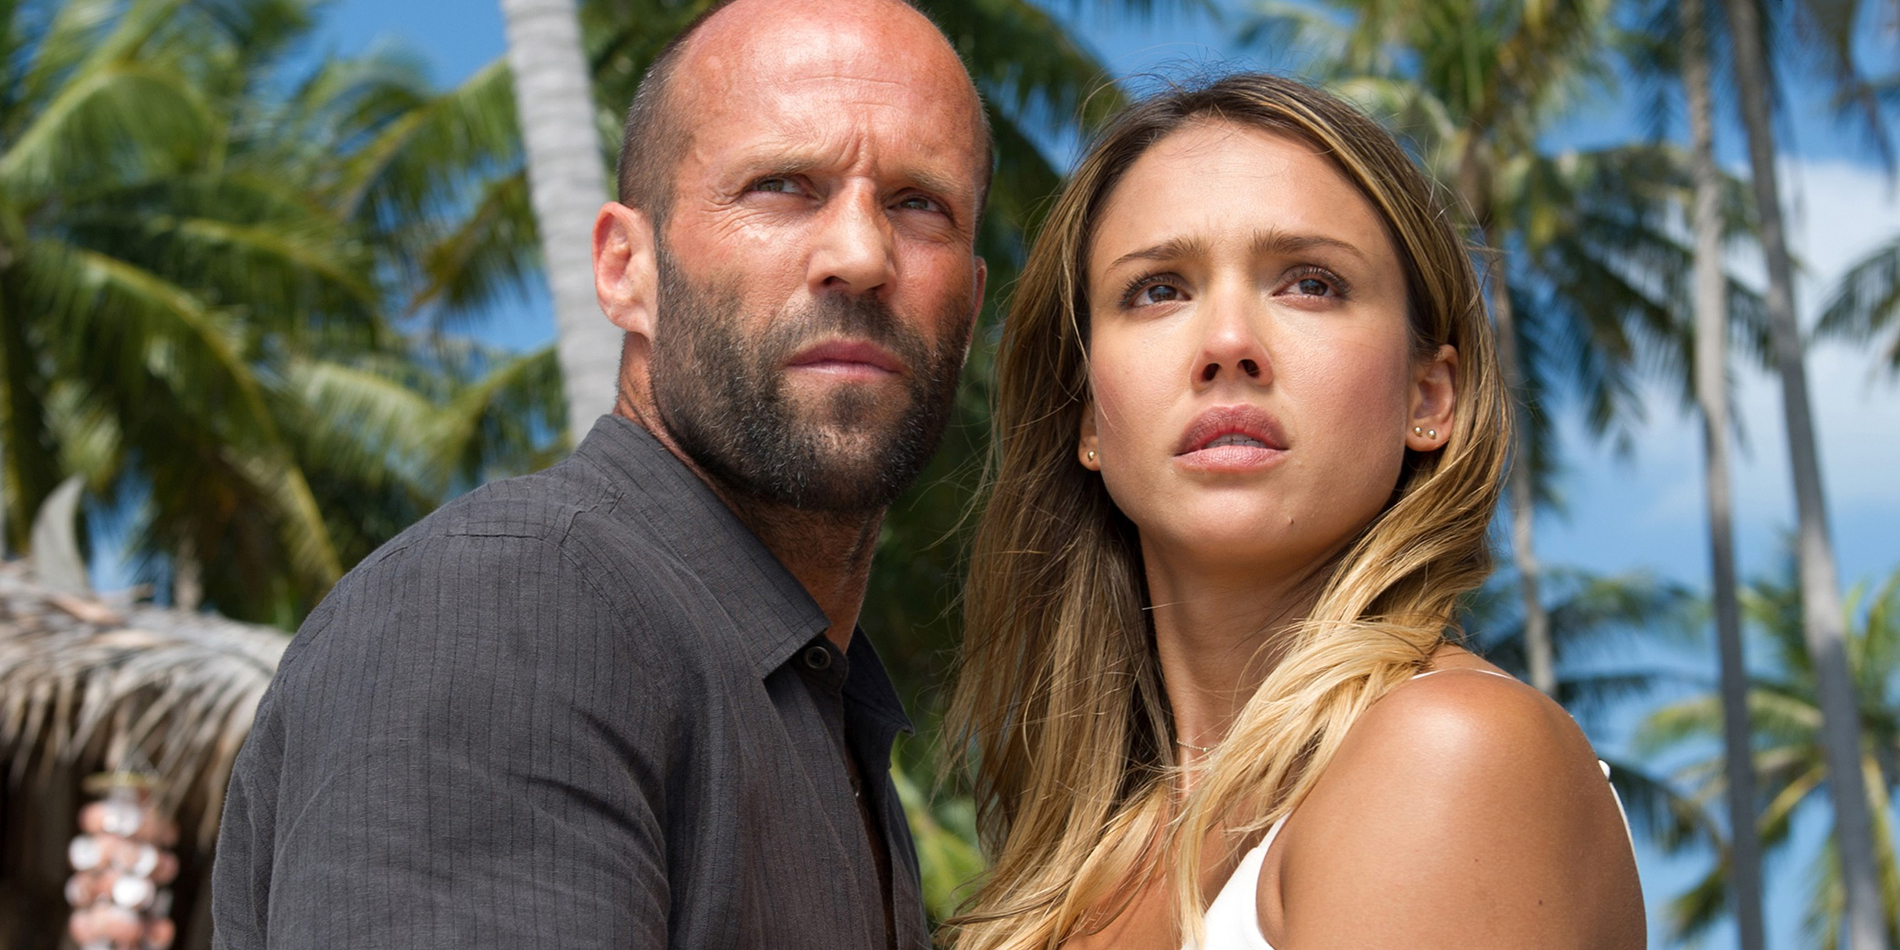 jason-statham-and-jessica-alba-in-mechanic-resurrection